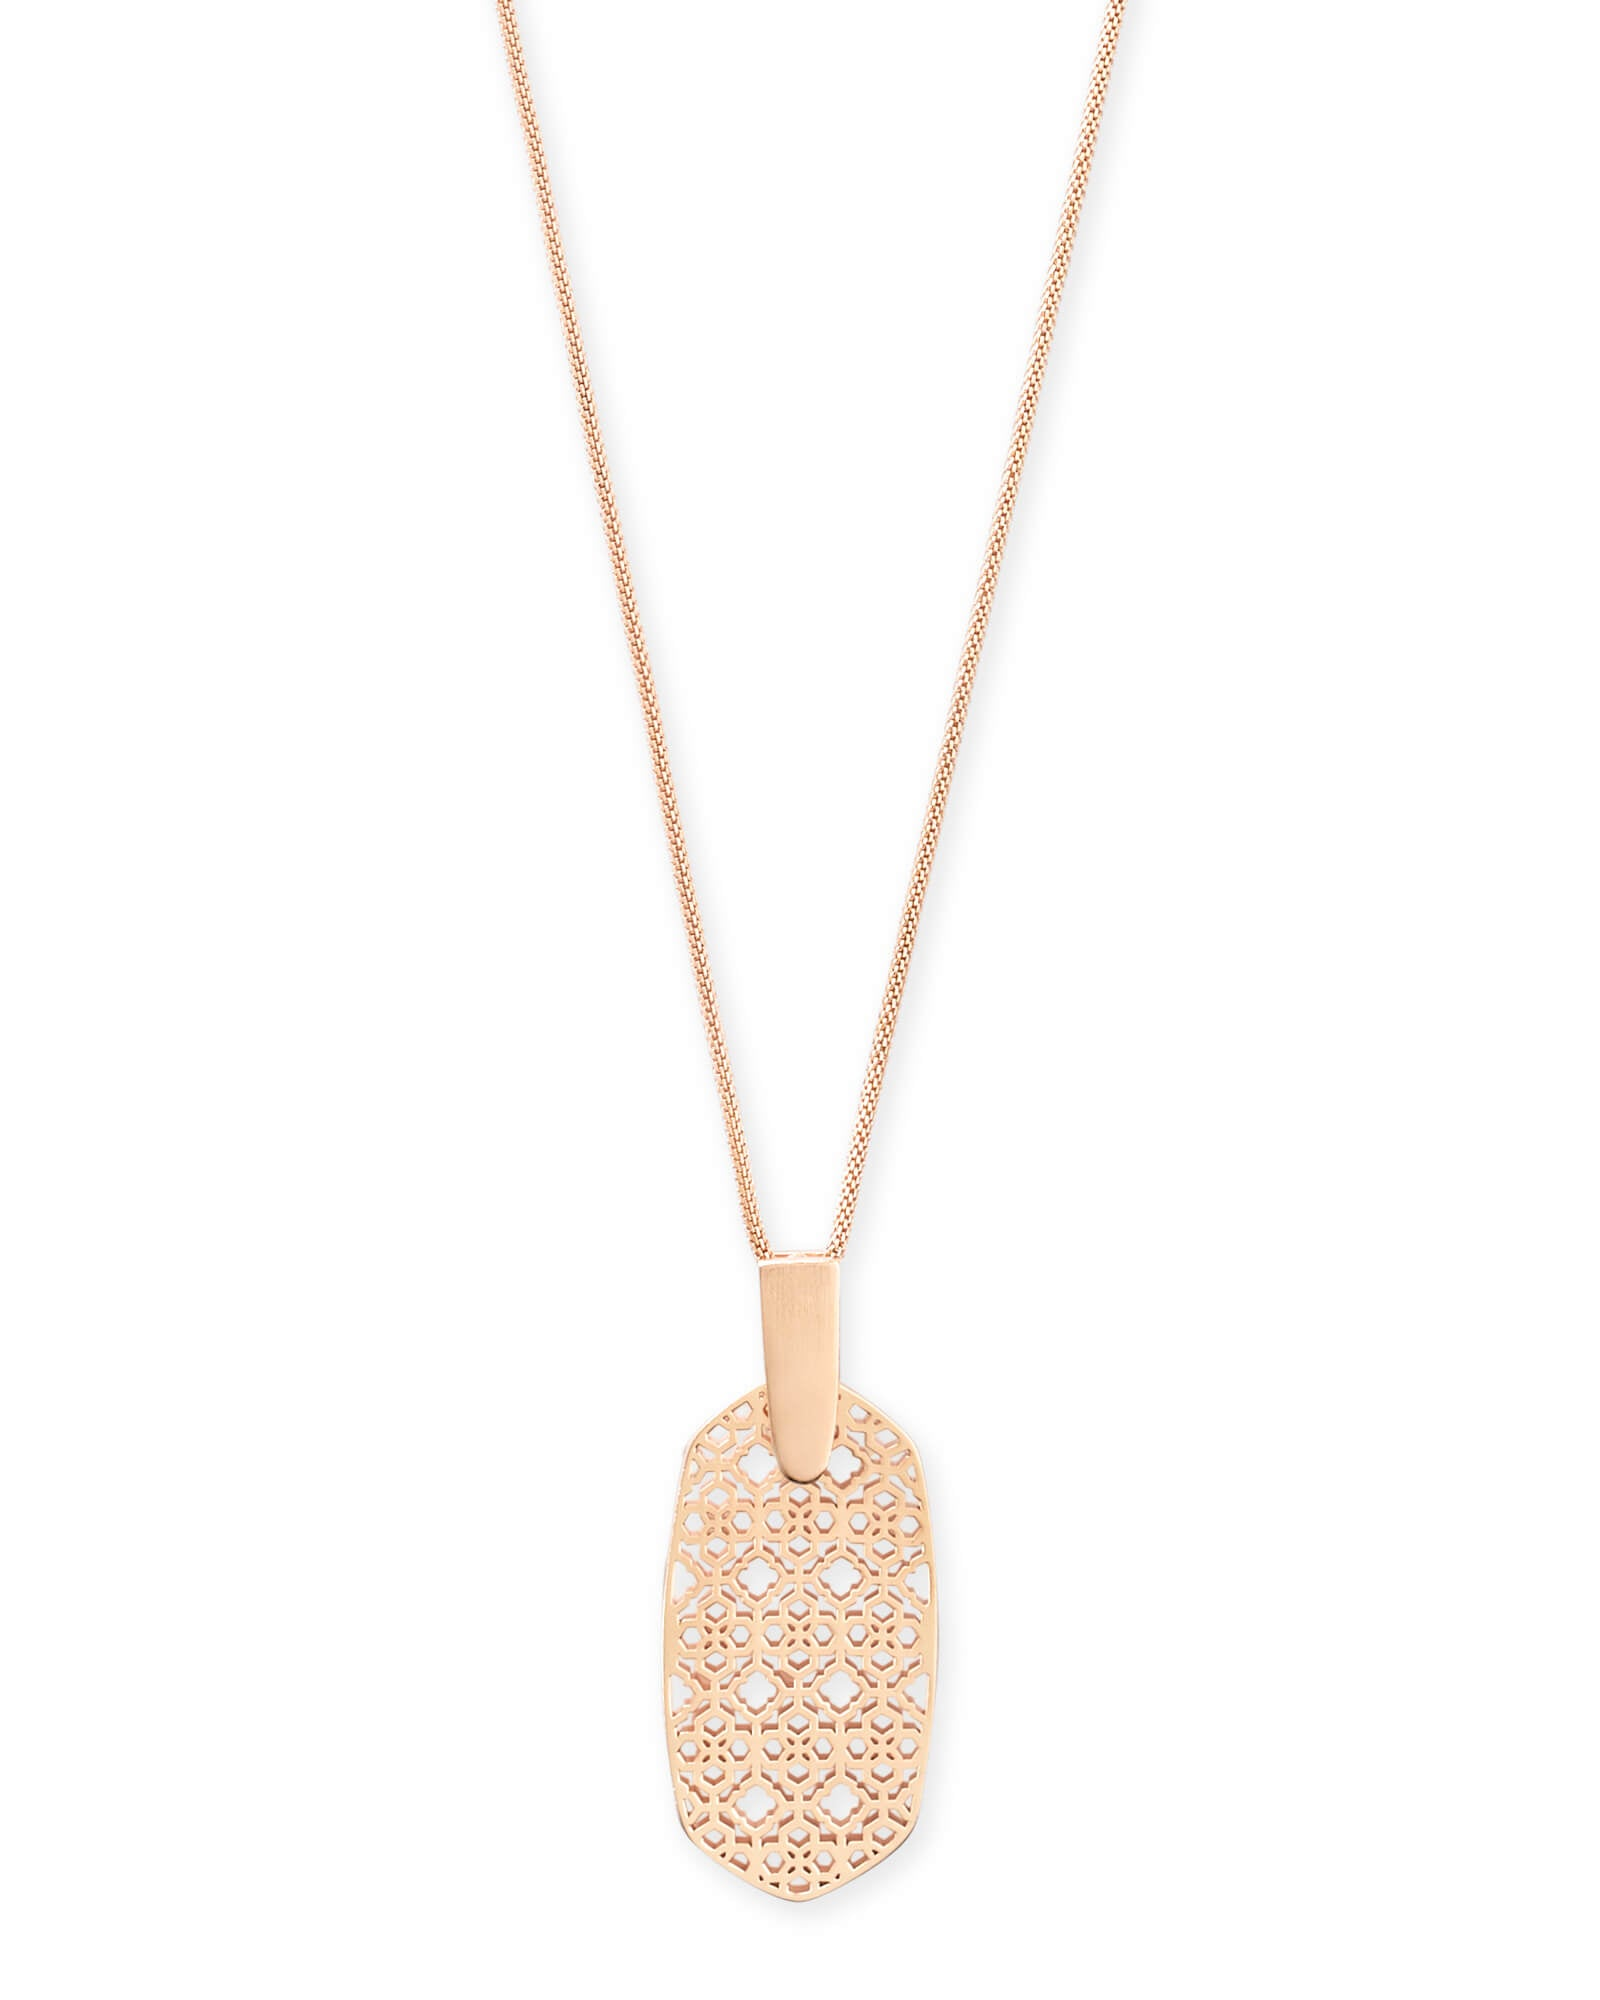 INEZ ROSE GOLD FILIGREE NECKLACE